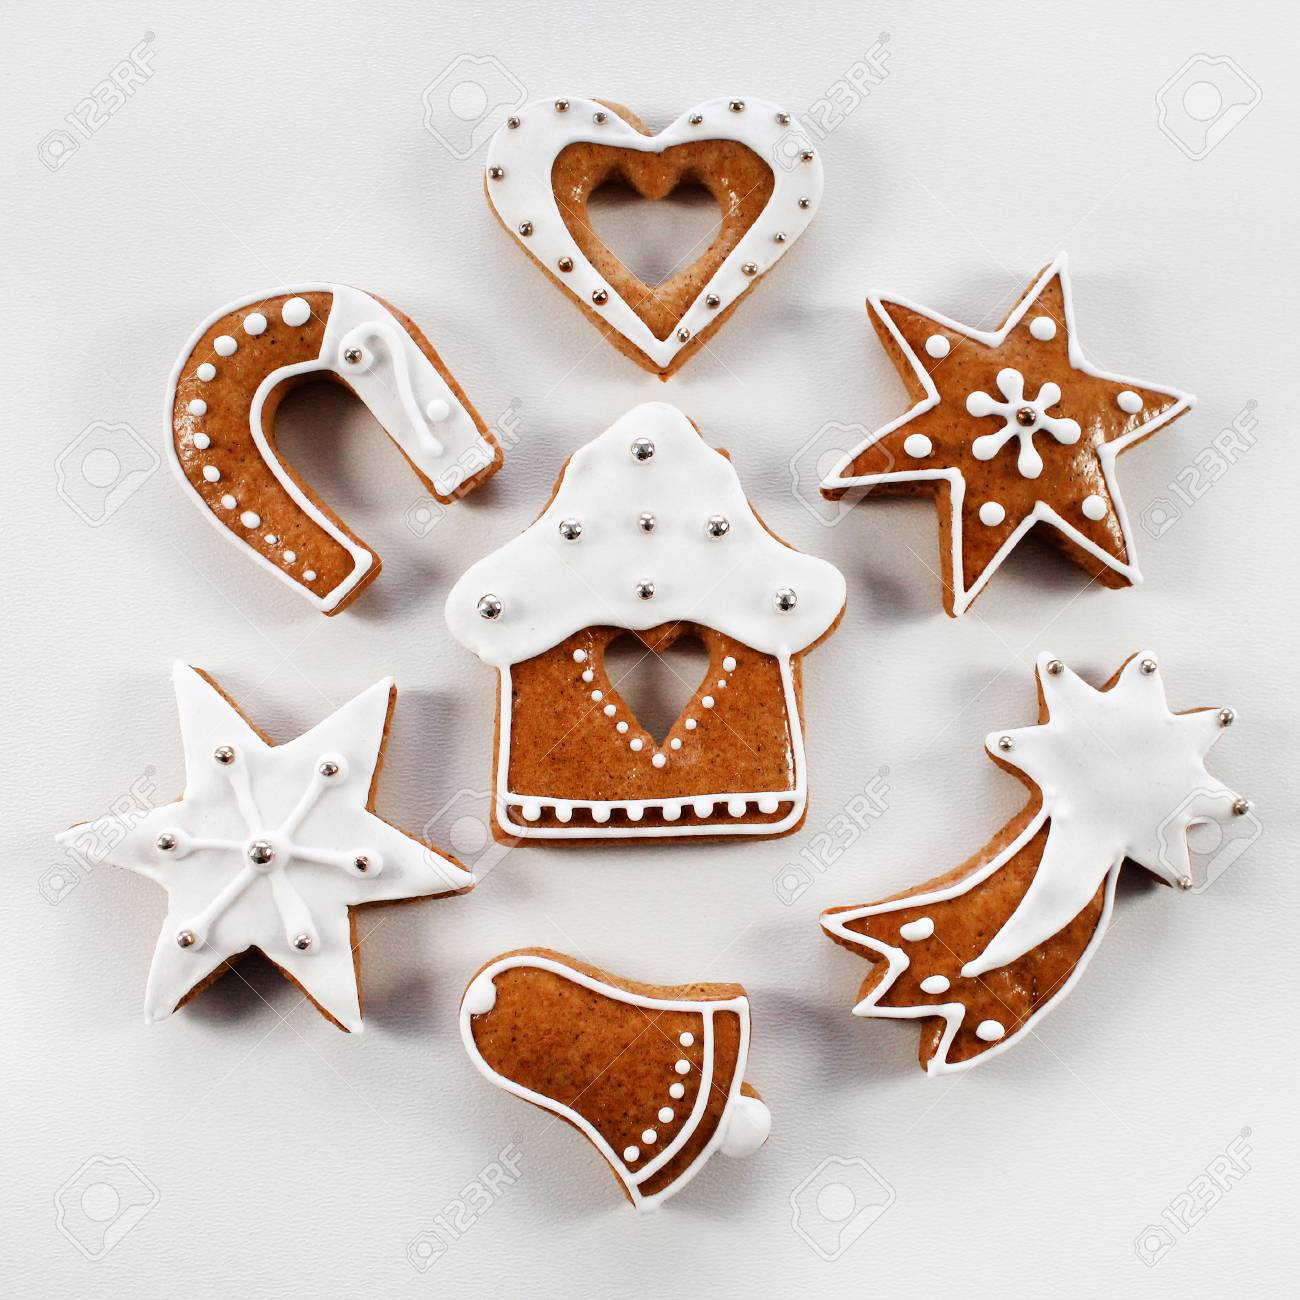 Christmas Gingerbread Handmade With White Icing Stock Photo, Picture ...